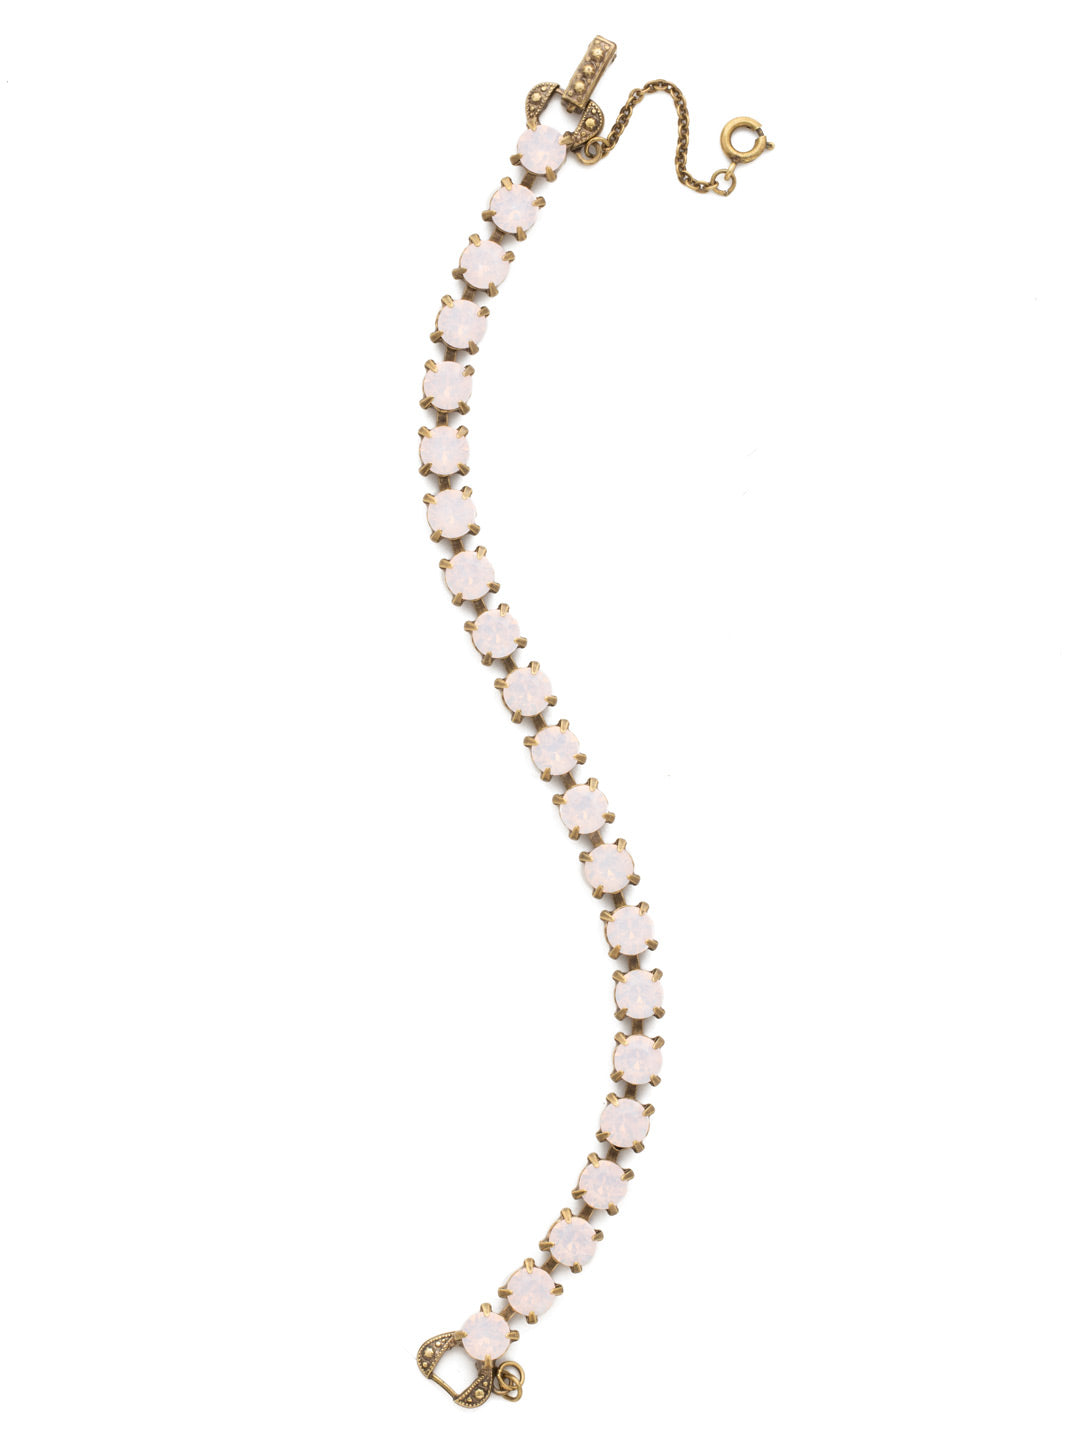 Repeating Round Tennis Bracelet - BCZ36AGROW